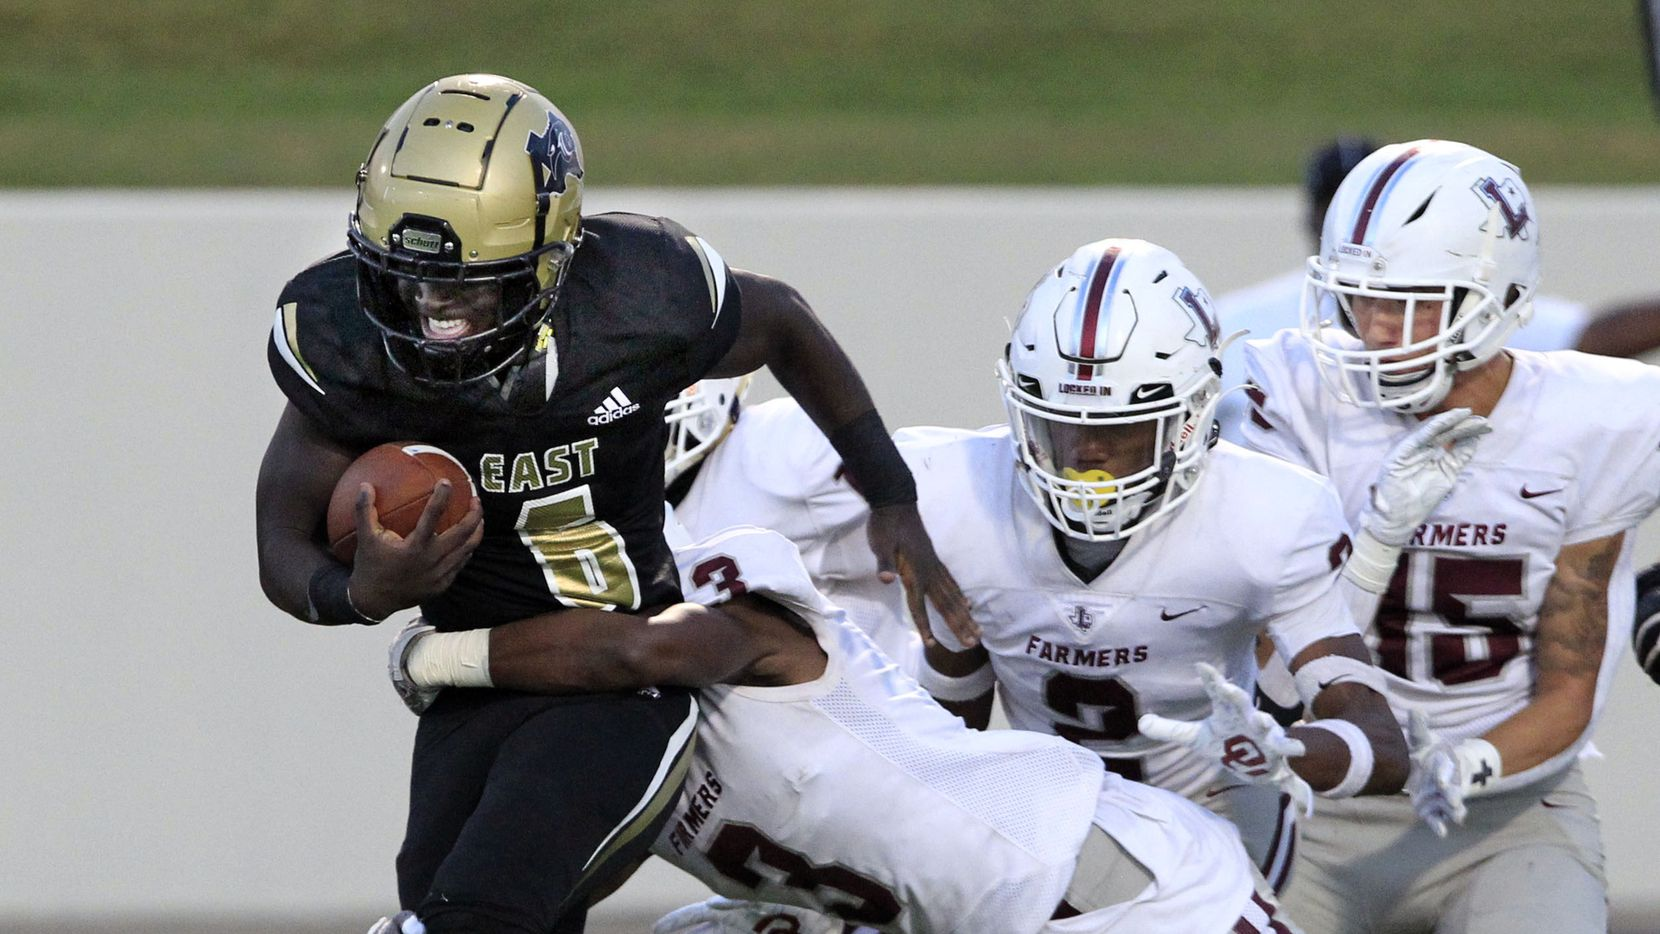 Plano East's Ismail Mahdi (6) picks up a couple of yards, but is hit by many Lewisville defenders, including Myles Johnson (3) during the first half of a high school football game at Kimbrough Stadium in Murphy on Friday, October 1, 2021.